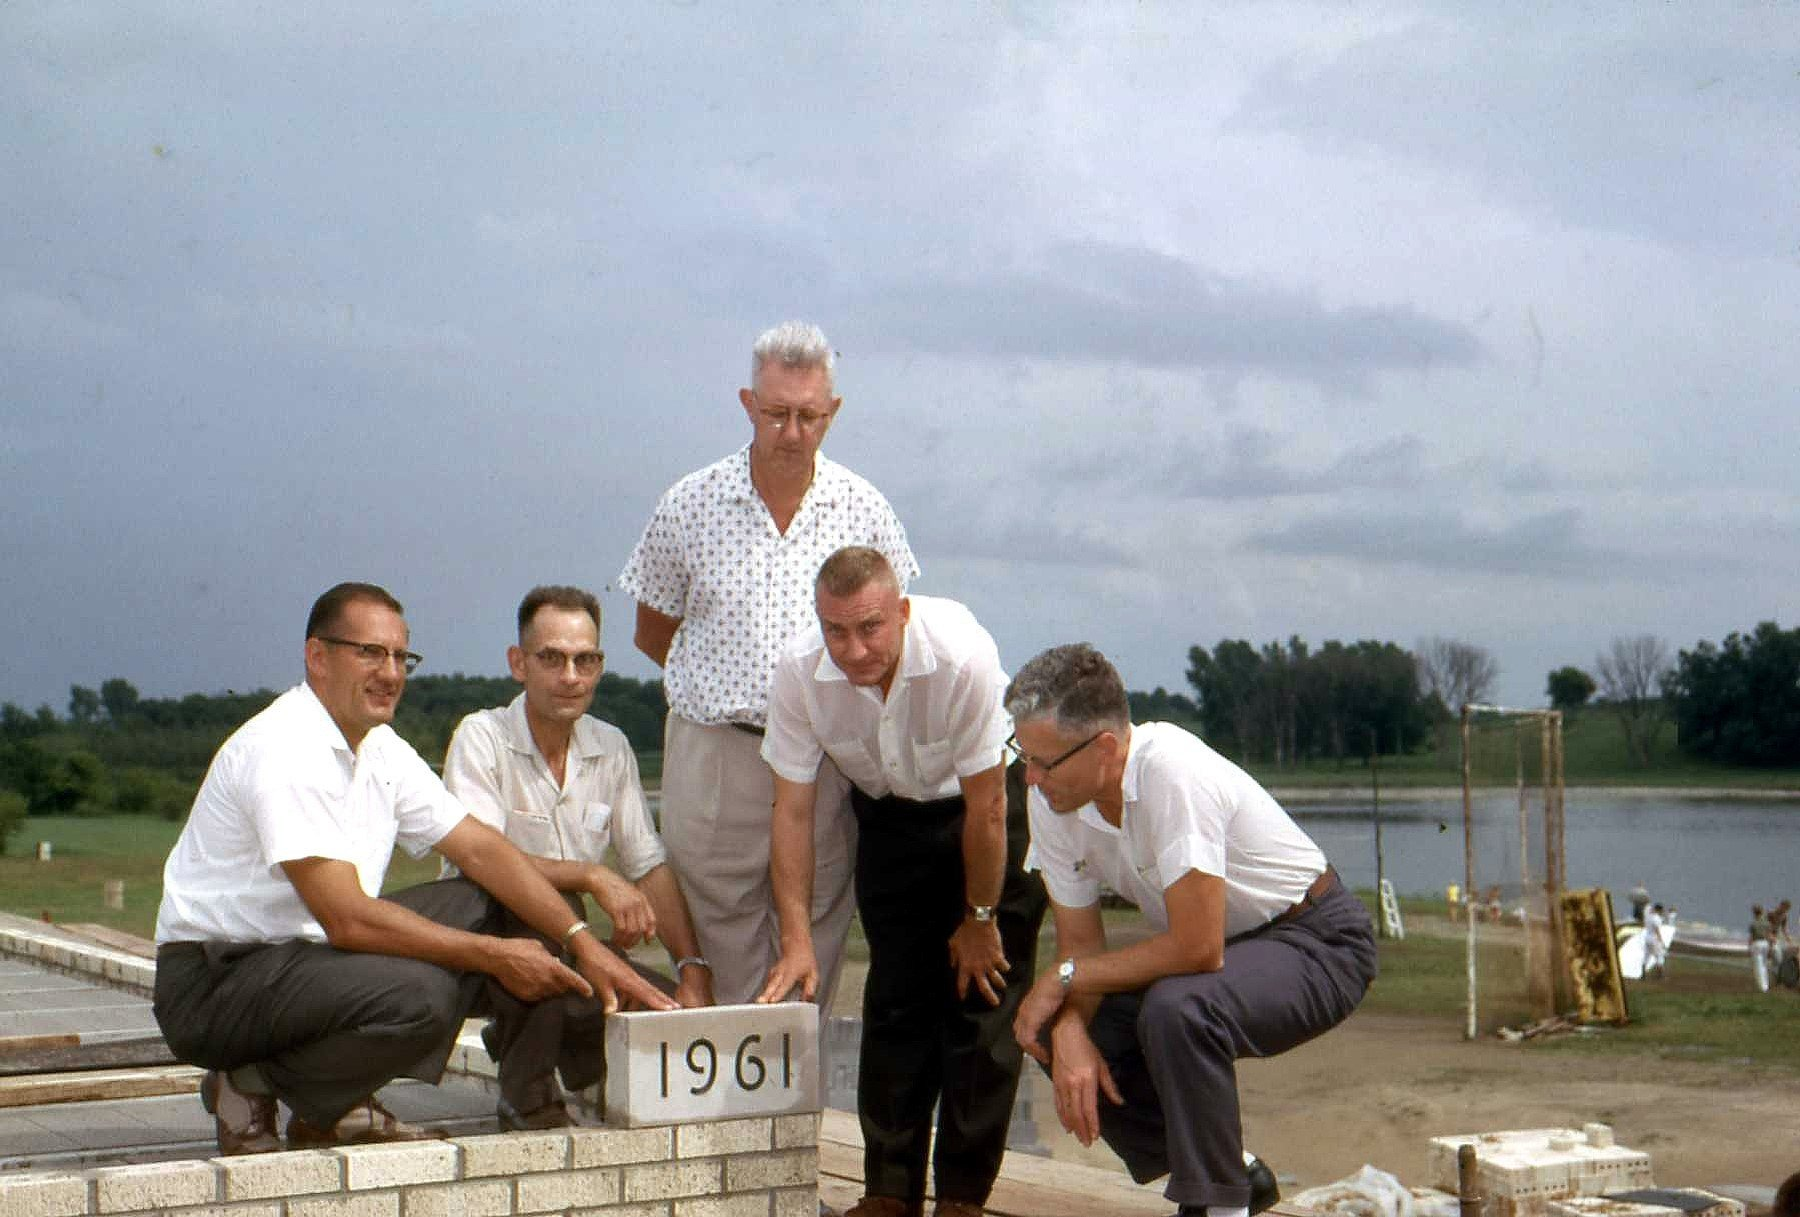 1961-placing-pavilion-cornerstone